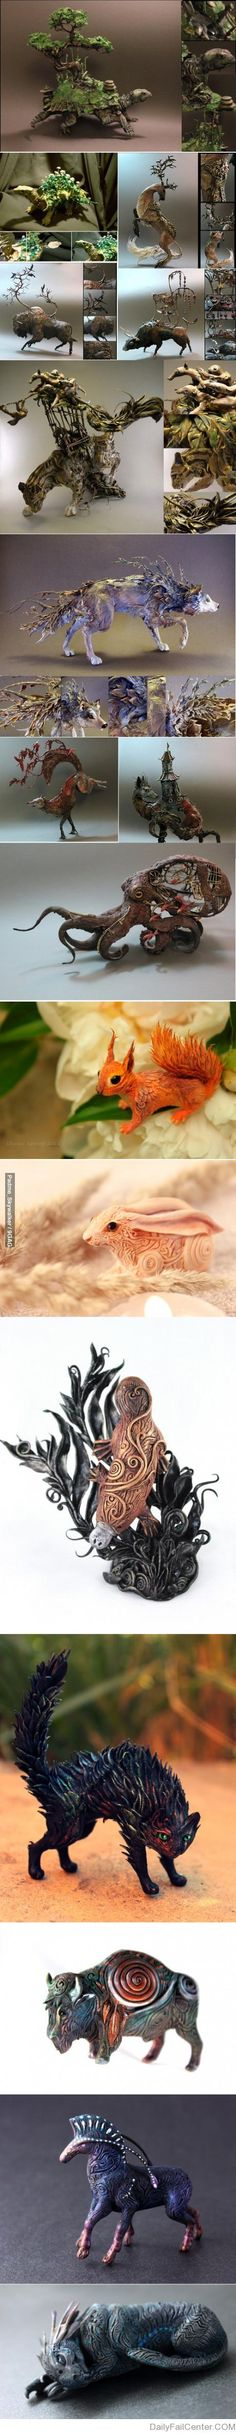 Handmade animal art pieces. the squirrel and rabbit are my favorite.